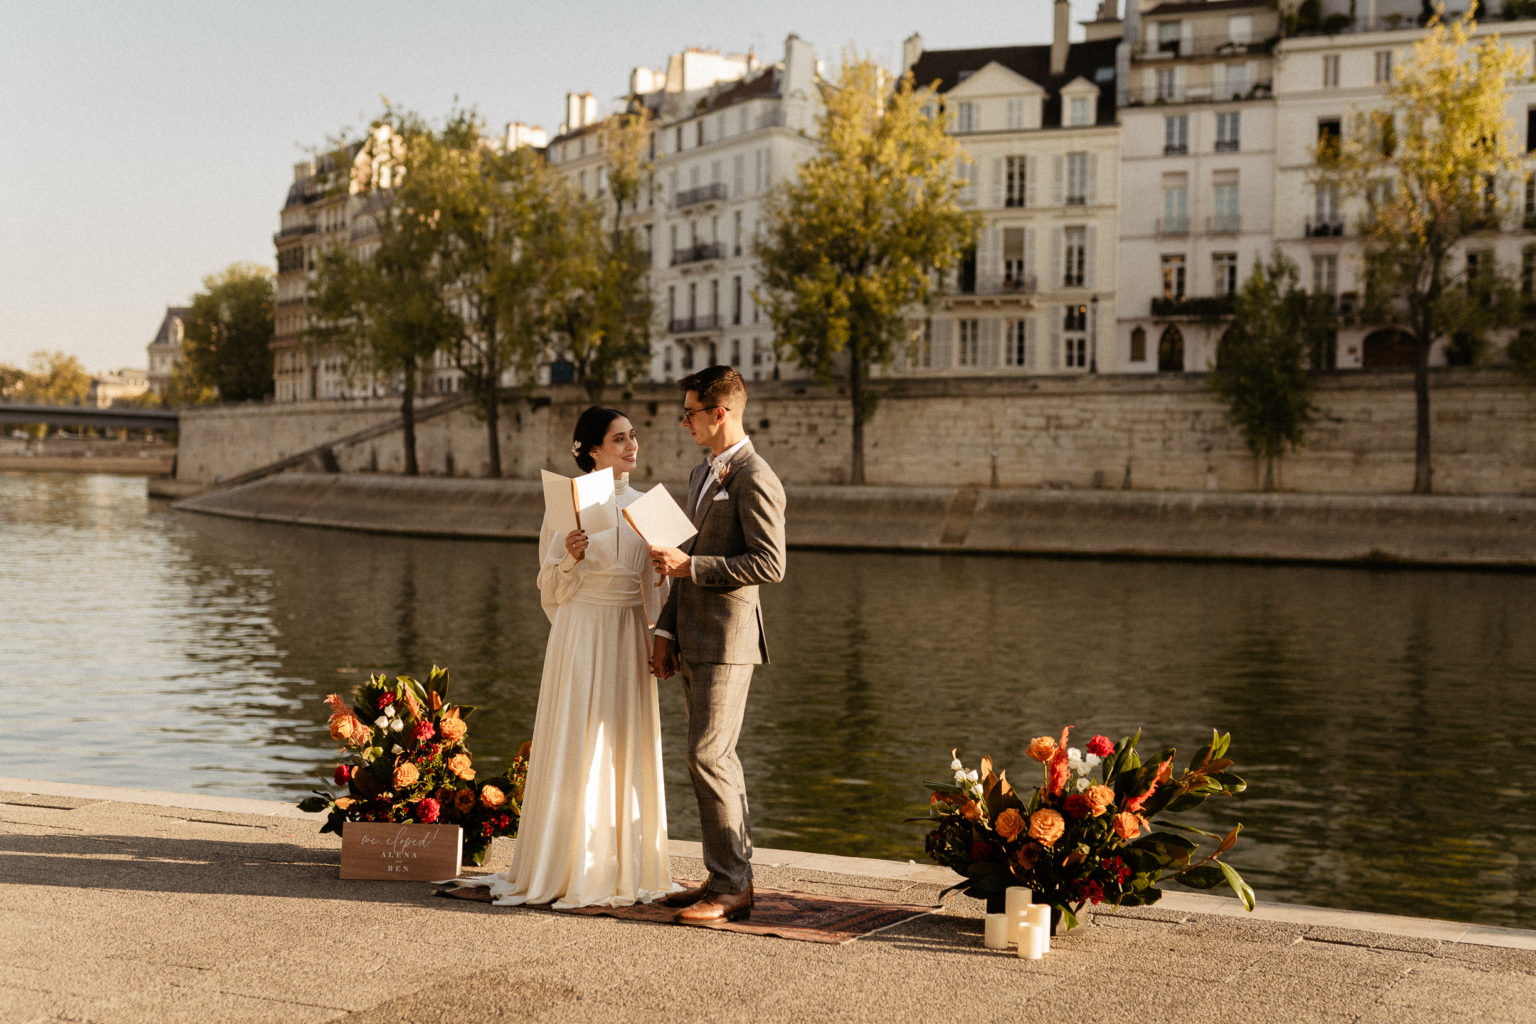 elopement wedding seine river ile saint louis